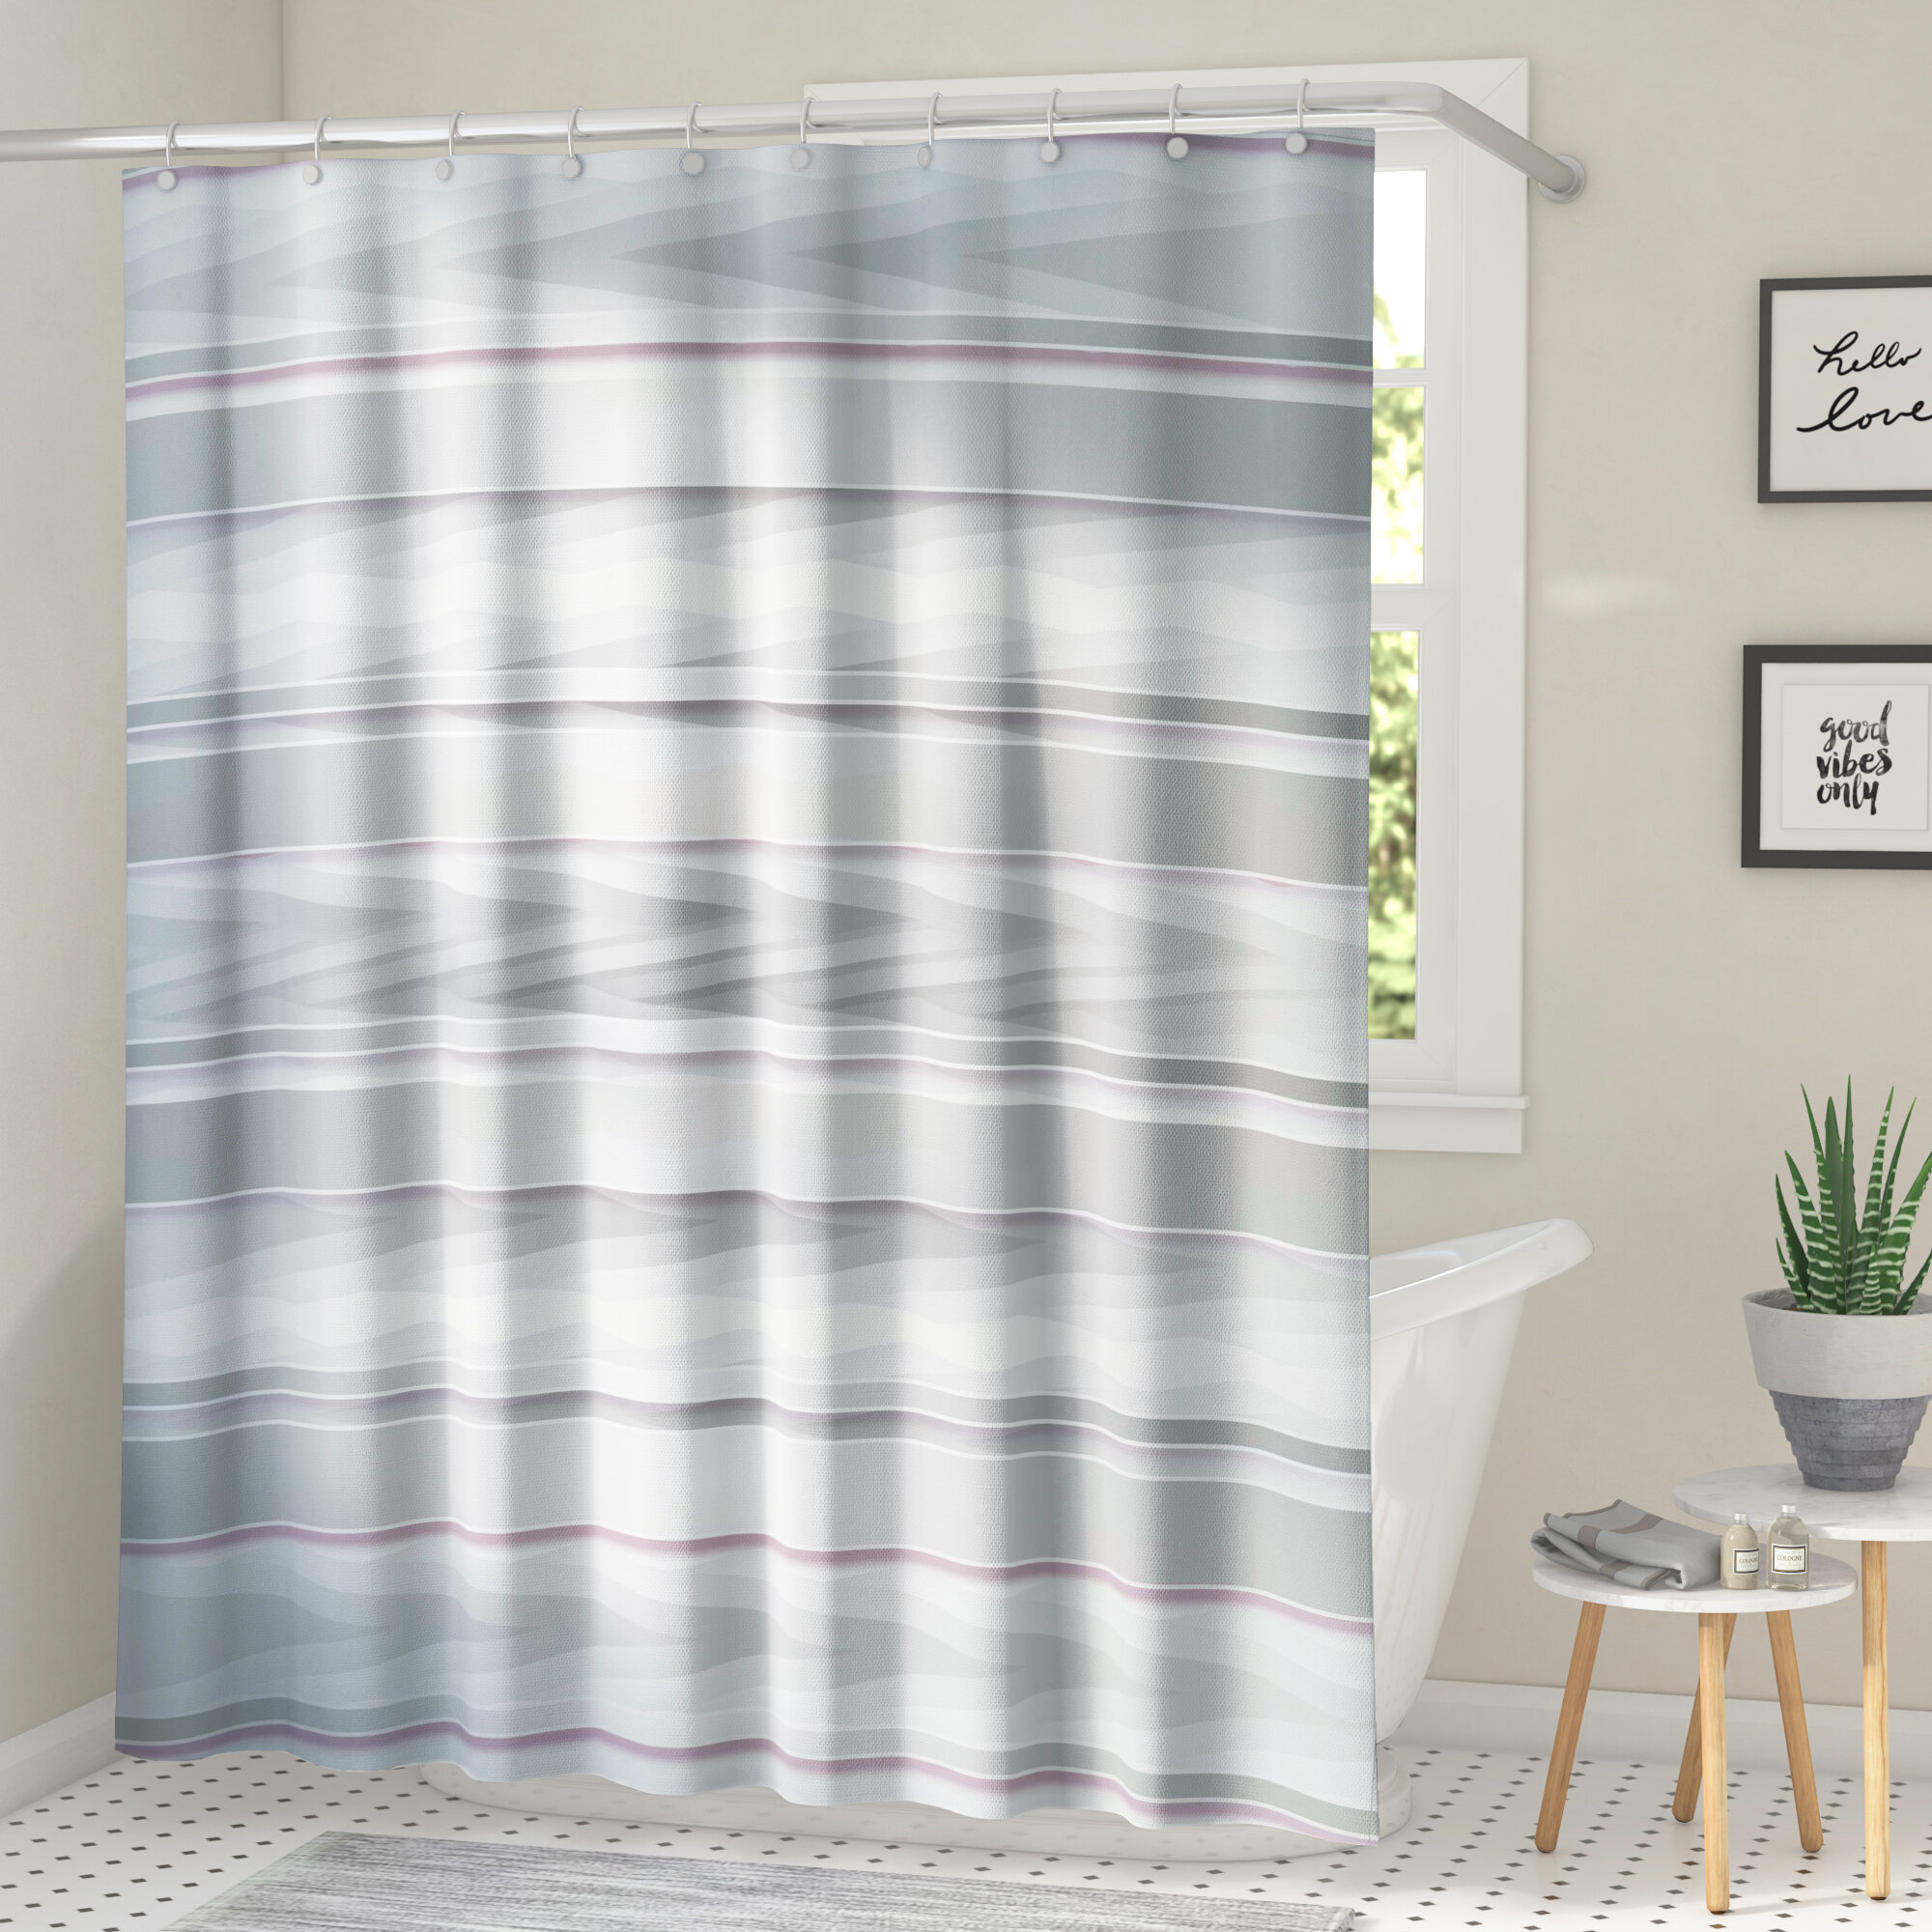 Bathroom Mat Set Waterproof Fabric Funny Naughty Expression Shower Curtain Liner